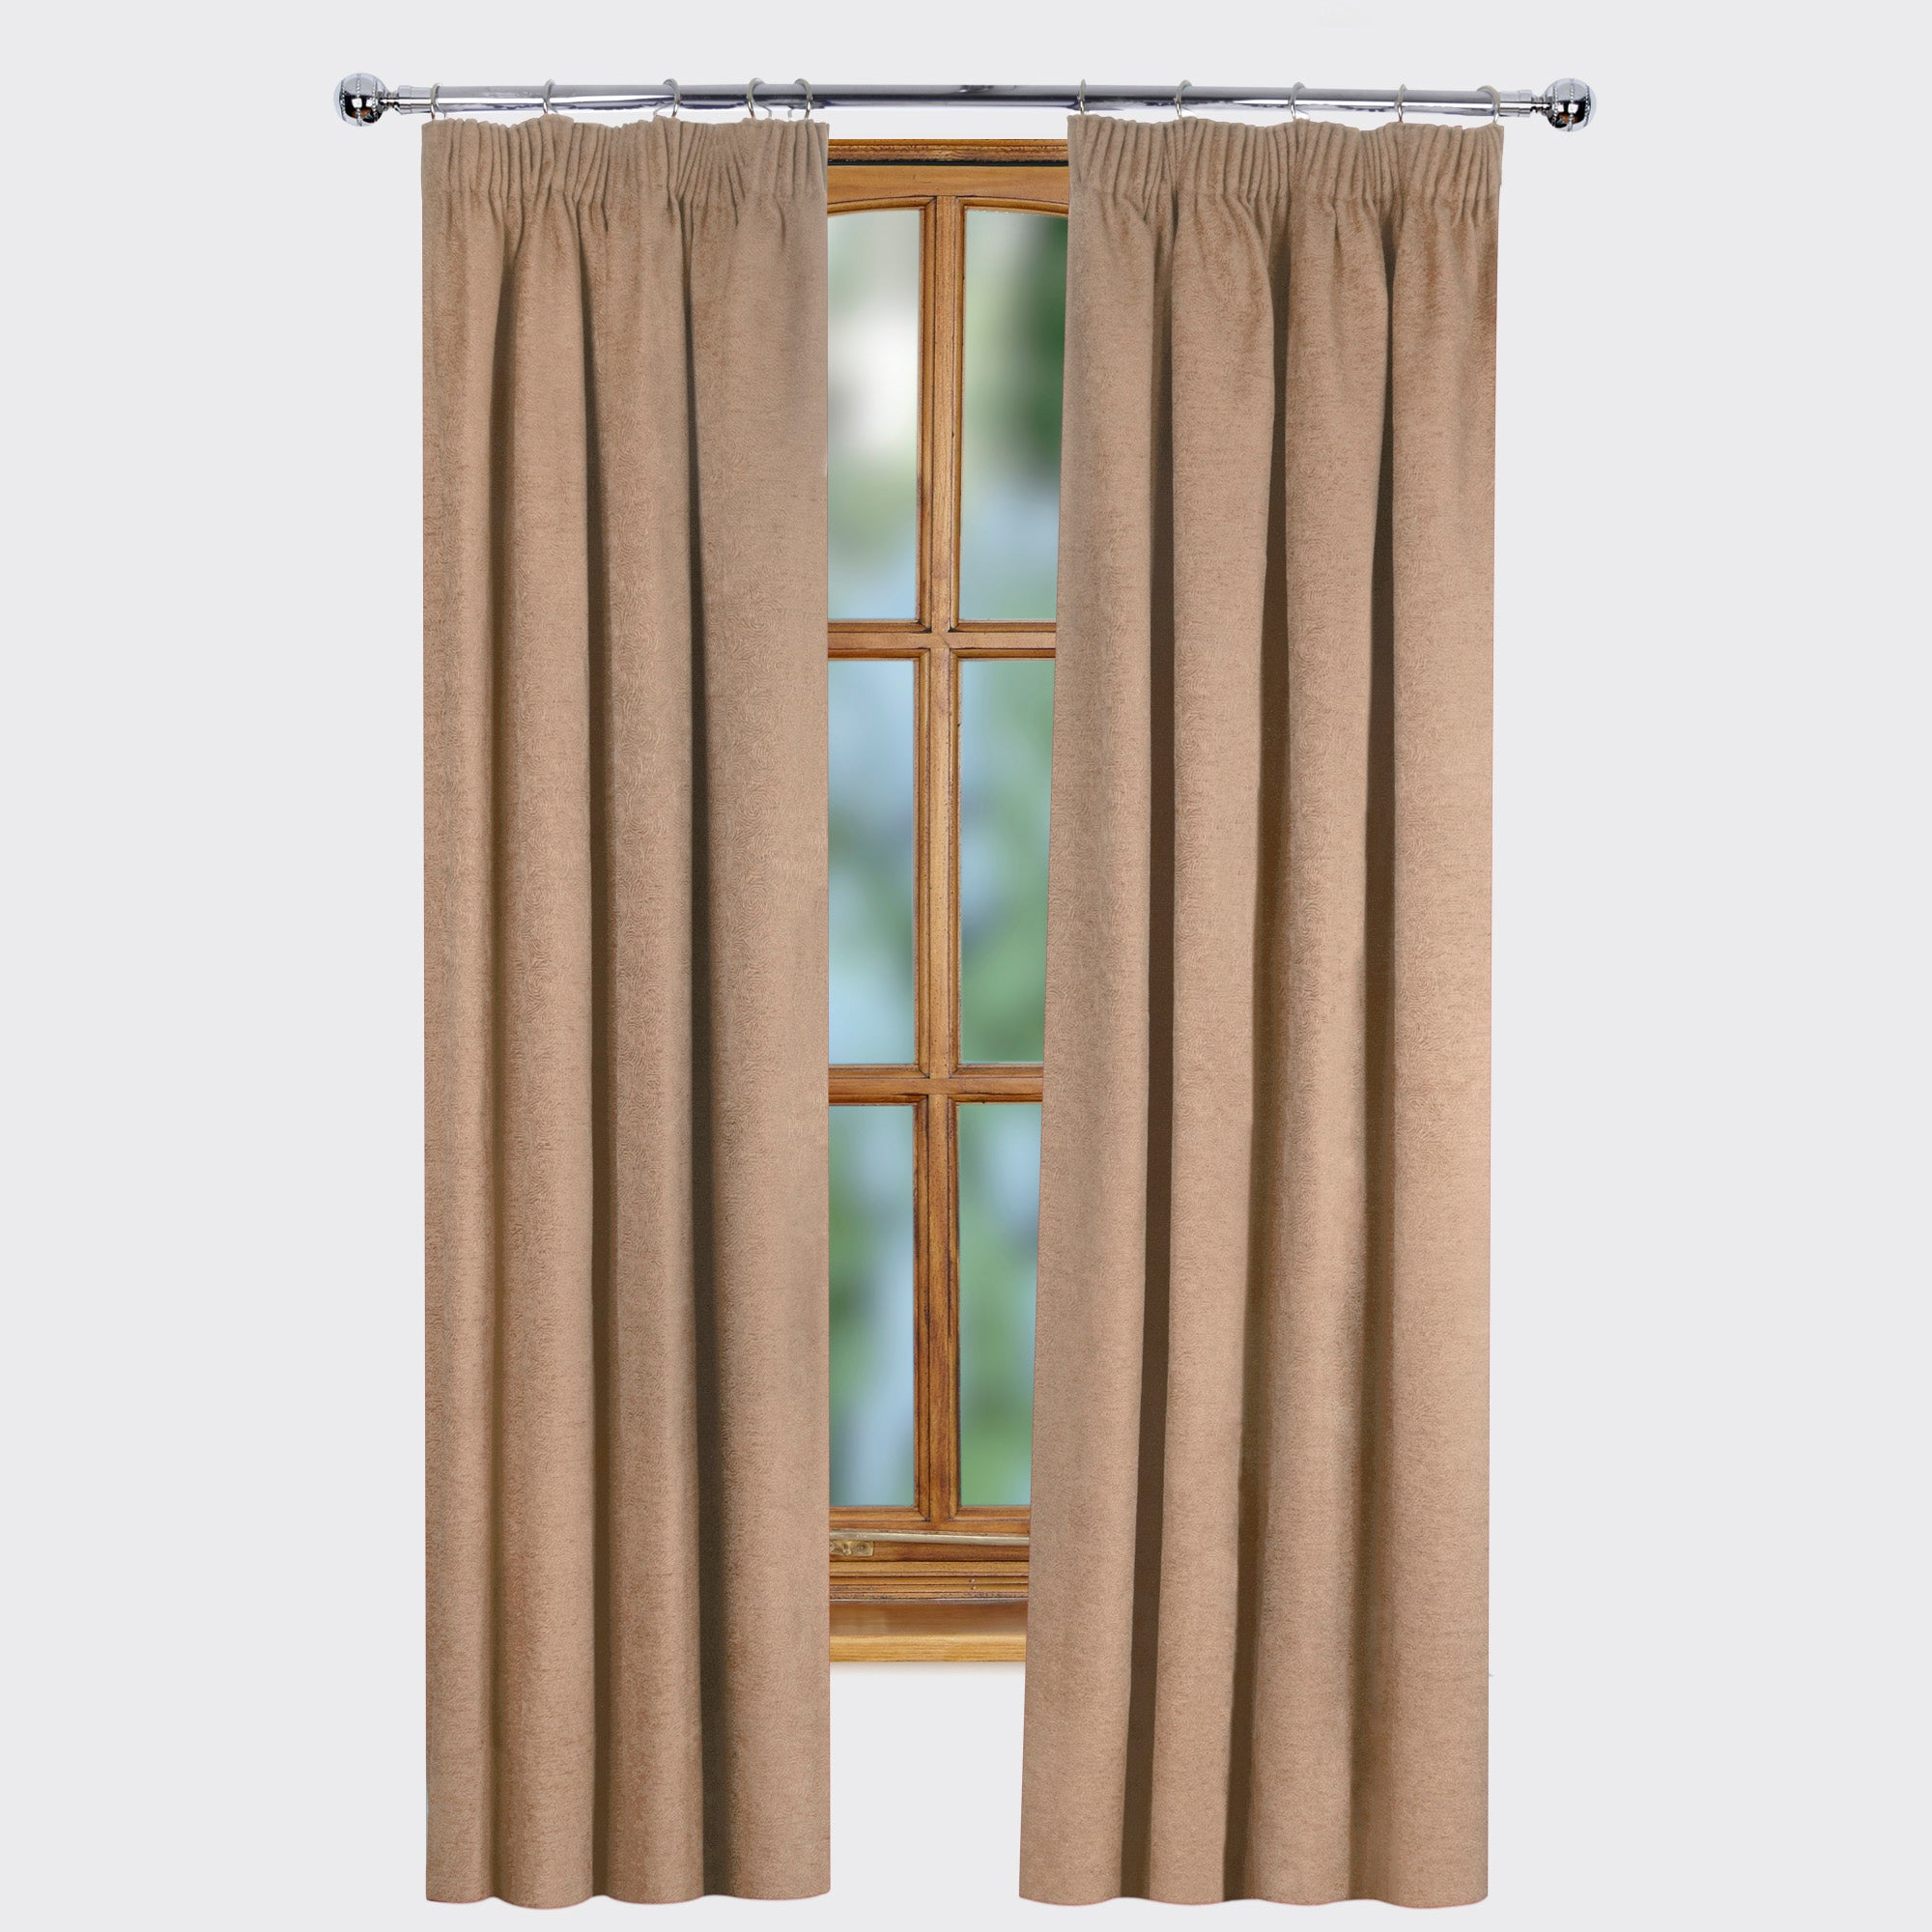 Natural Ontario Thermal Pencil Pleat Curtains